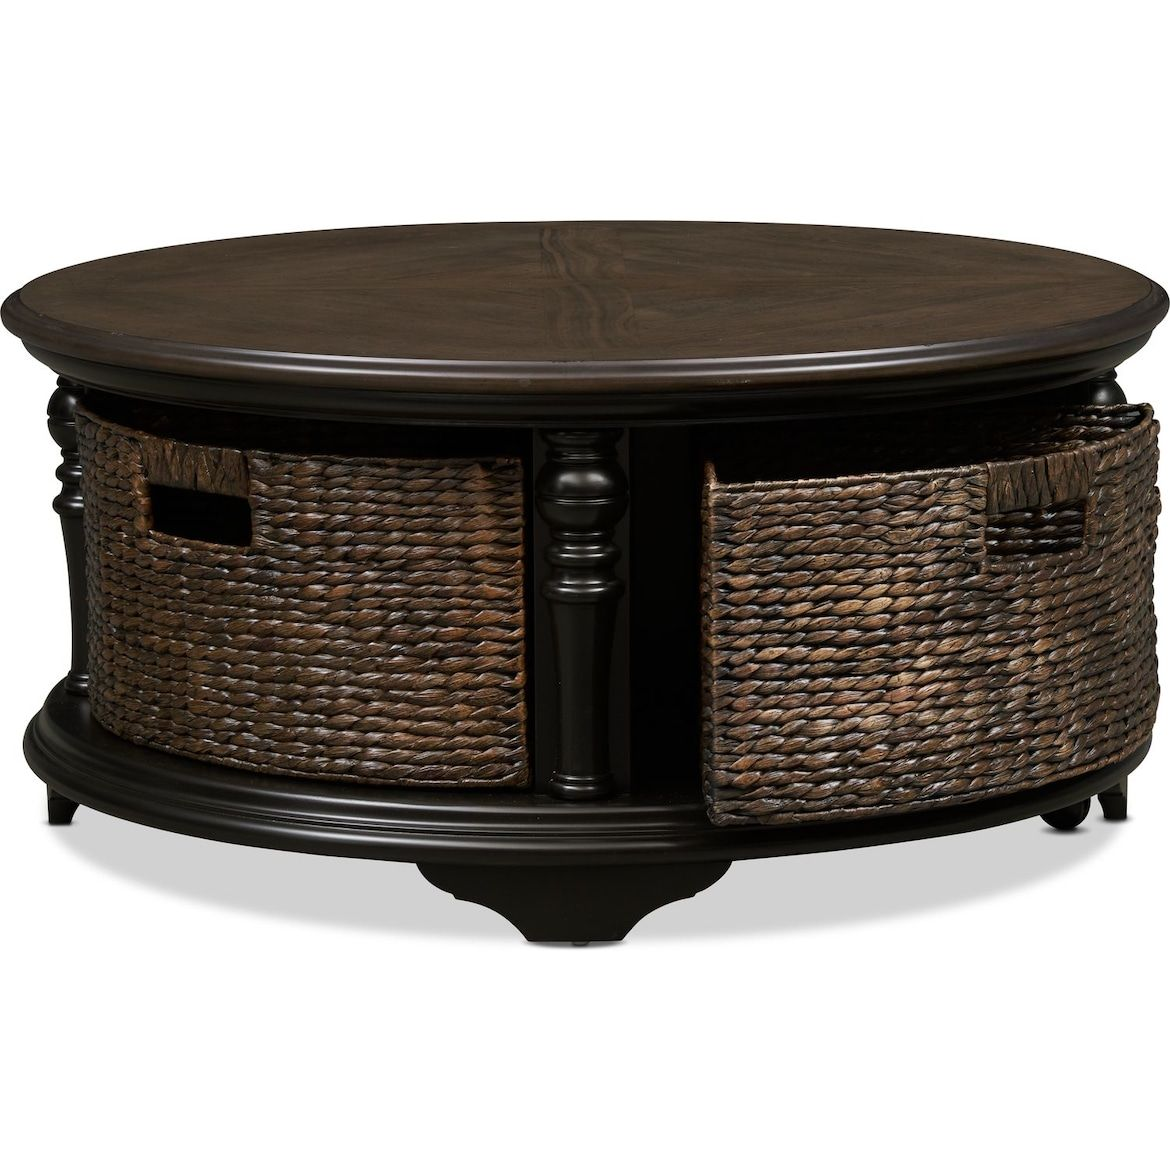 Charleston Coffee Table Value City Furniture And Mattresses Coffee Table Value City Furniture Coffee Table Stand [ 1170 x 1170 Pixel ]